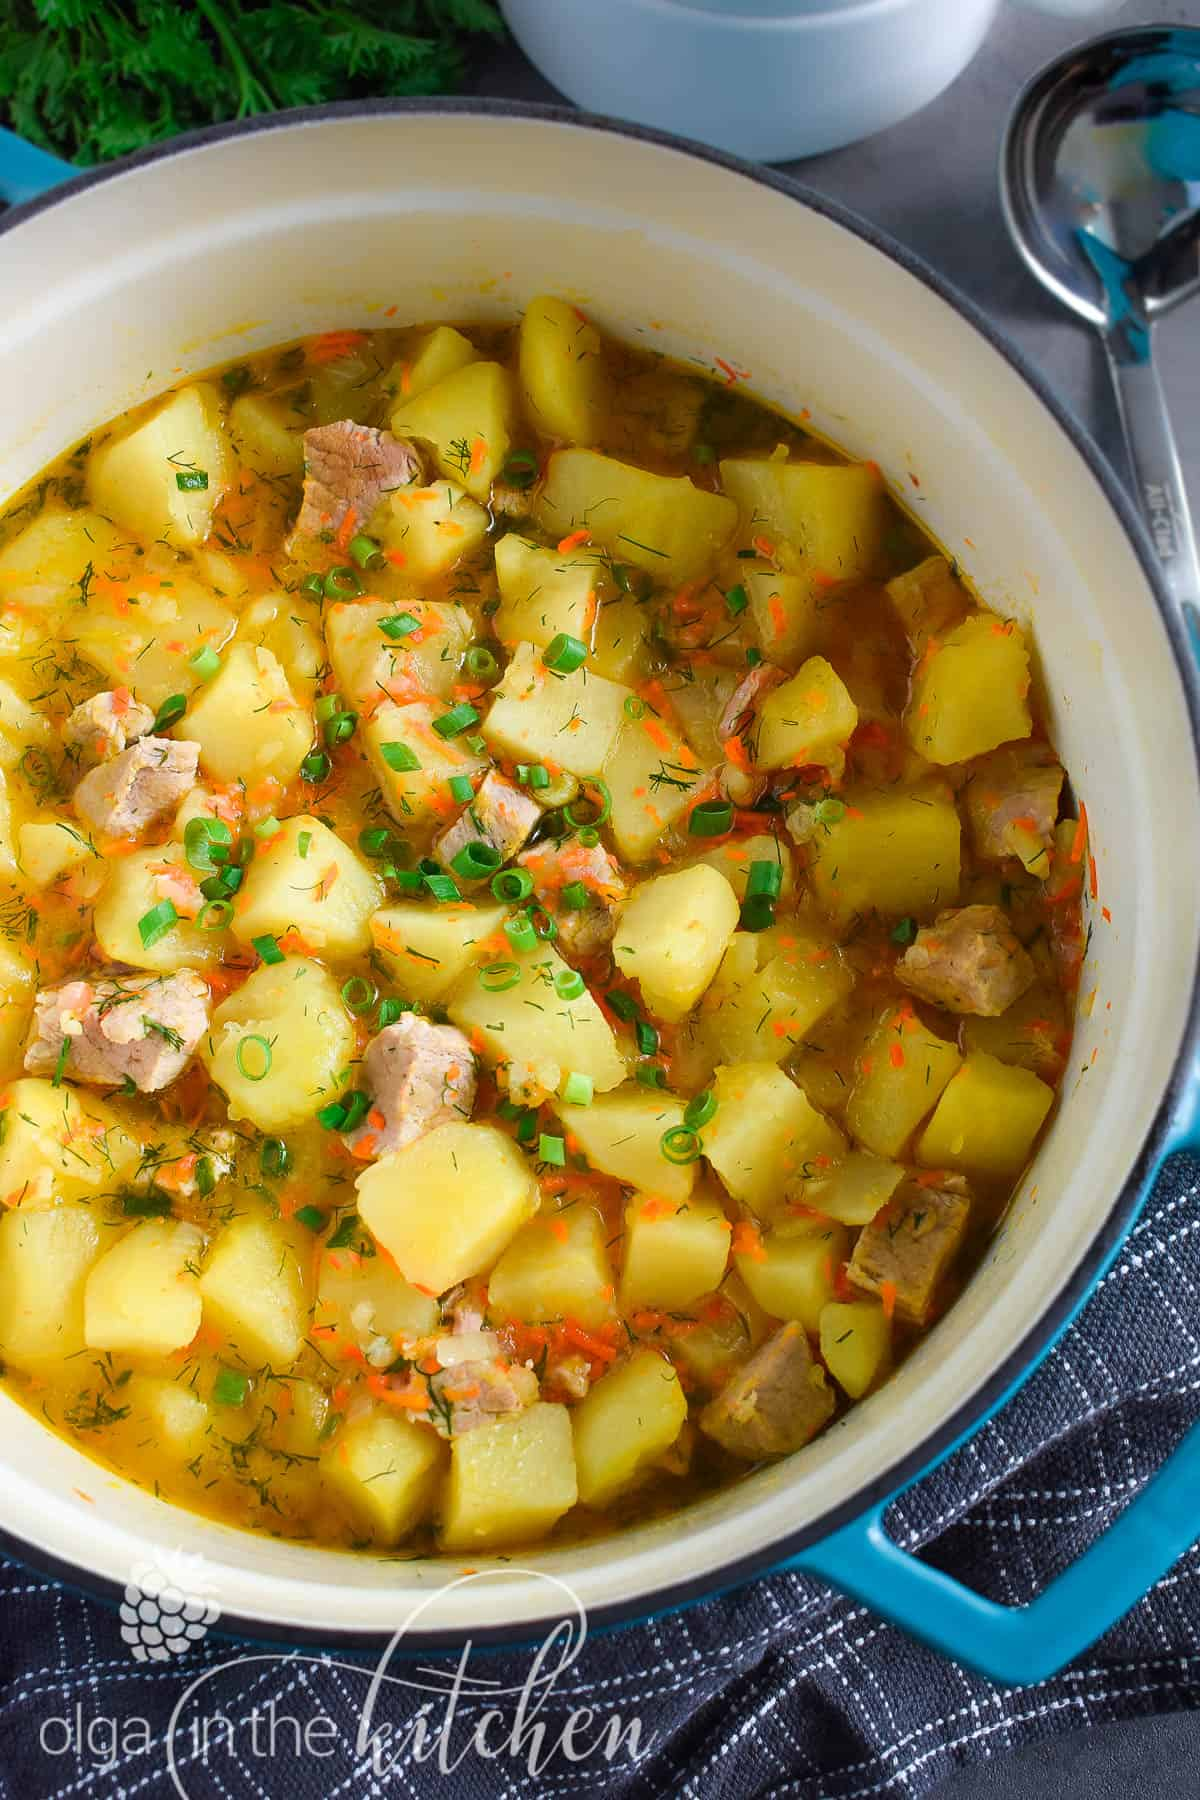 Braised Potatoes with Pork: chunks of potatoes and tender-juicy meat coated in sauce that is created from carrots, onions and potato starch.| olgainthekitchen.com #olgainthekitchen #braisedpotatoes #potatoes #dinner #maincourse #pork #onepot #holiday